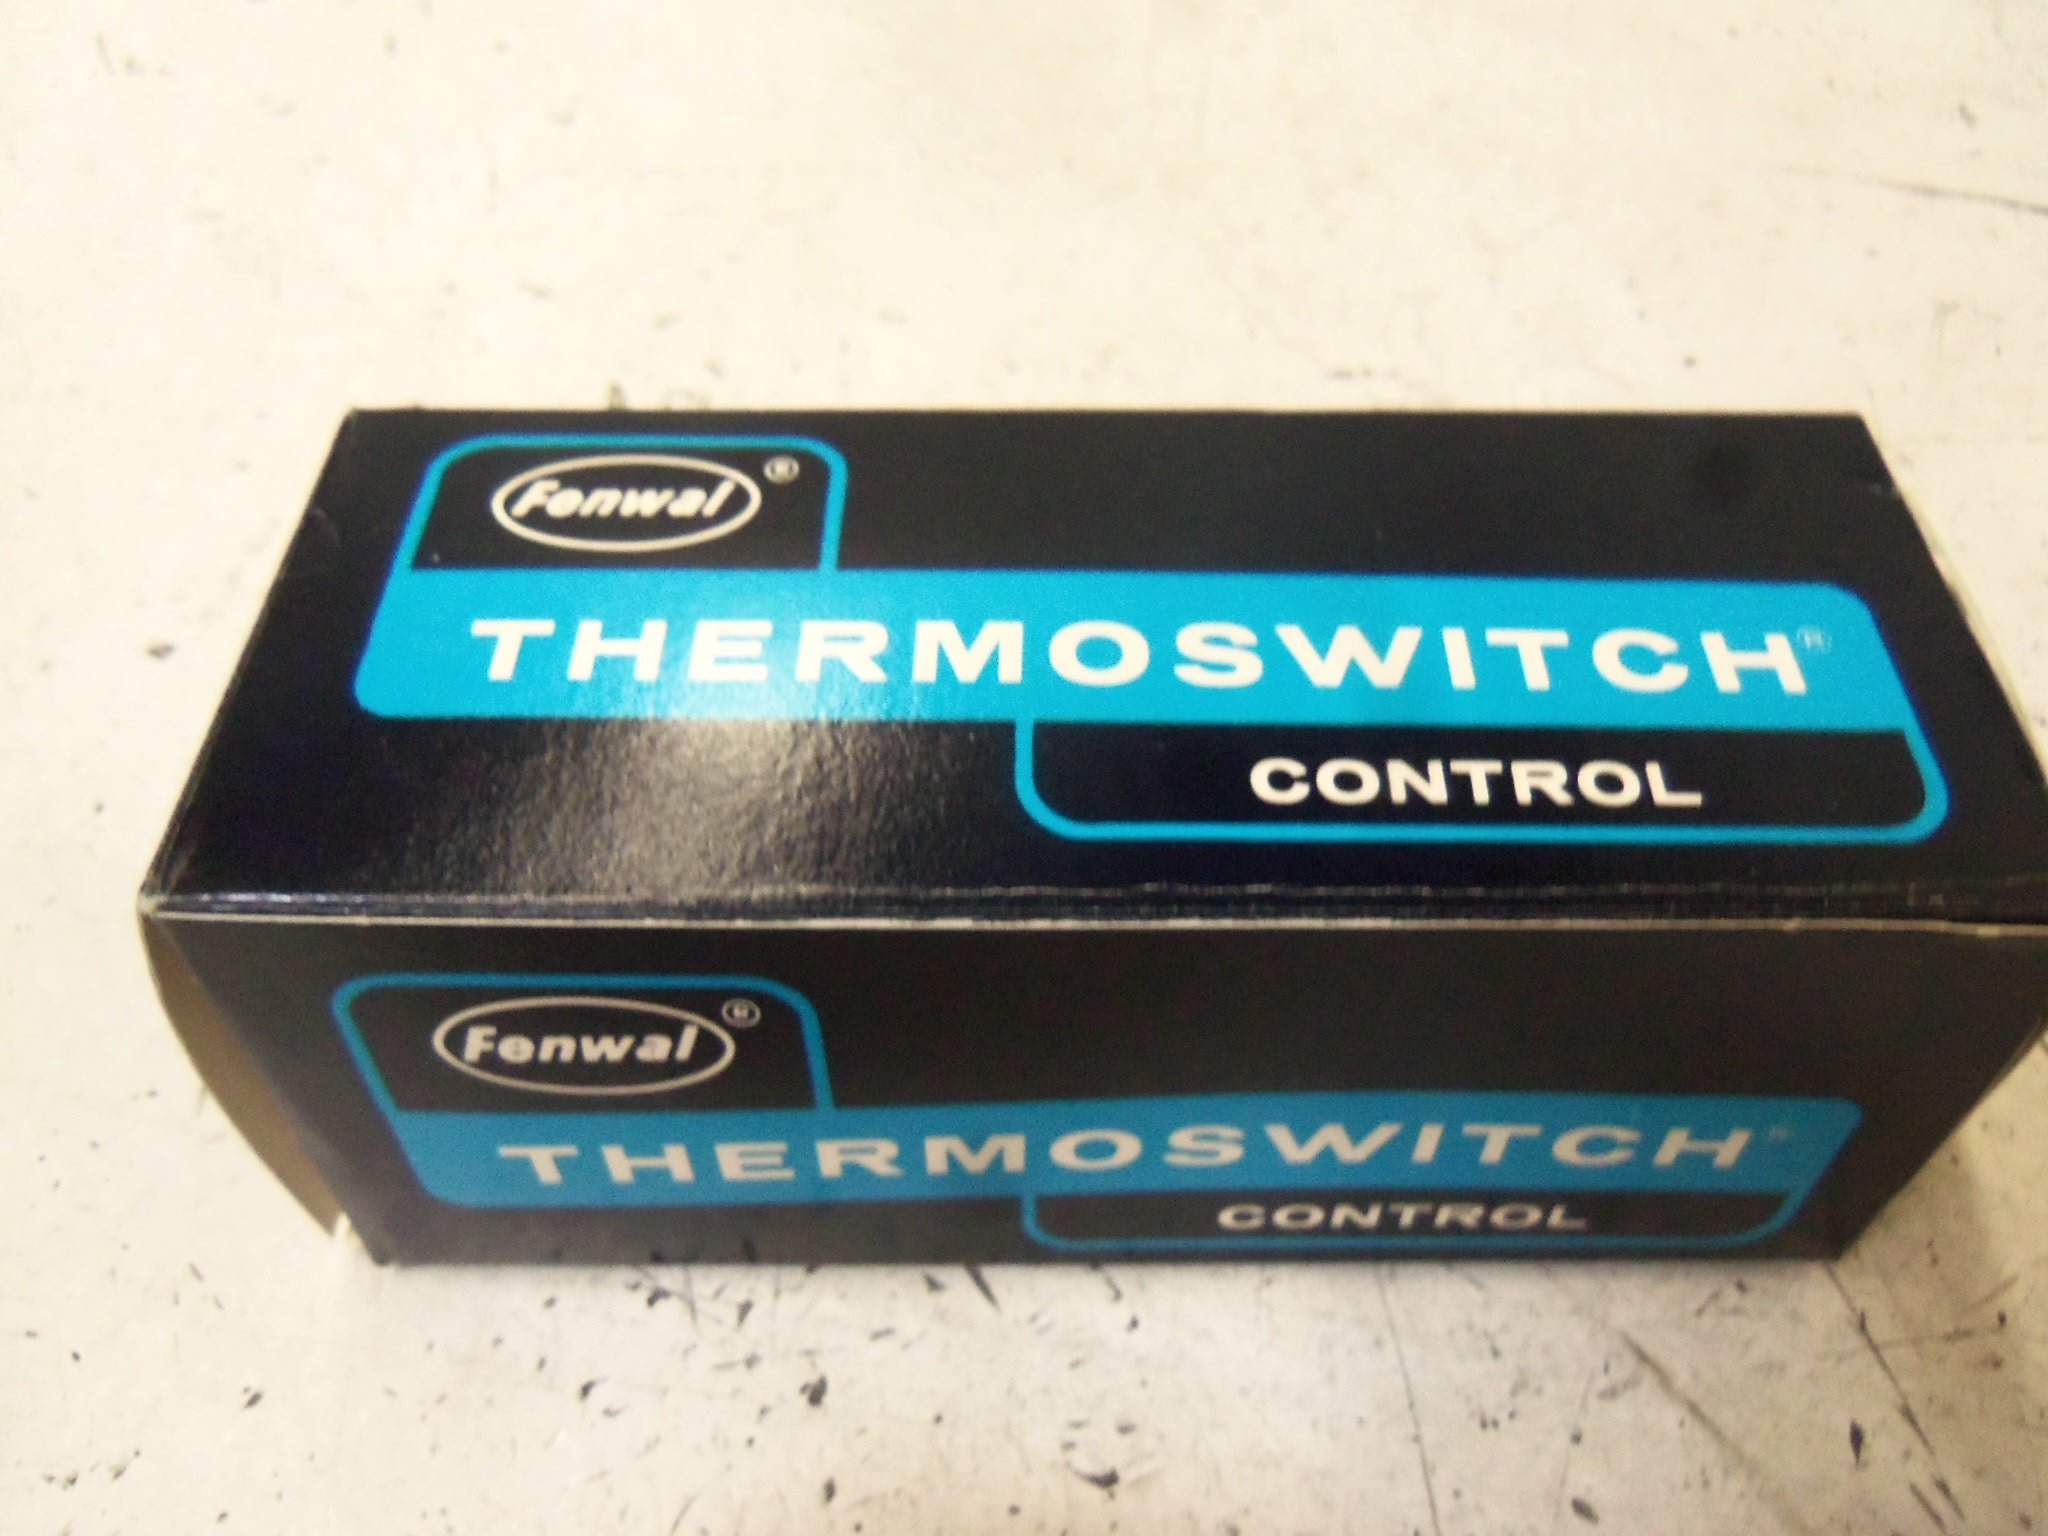 FENWAL 18000-0 THERMOSWITCH *NEW IN BOX*